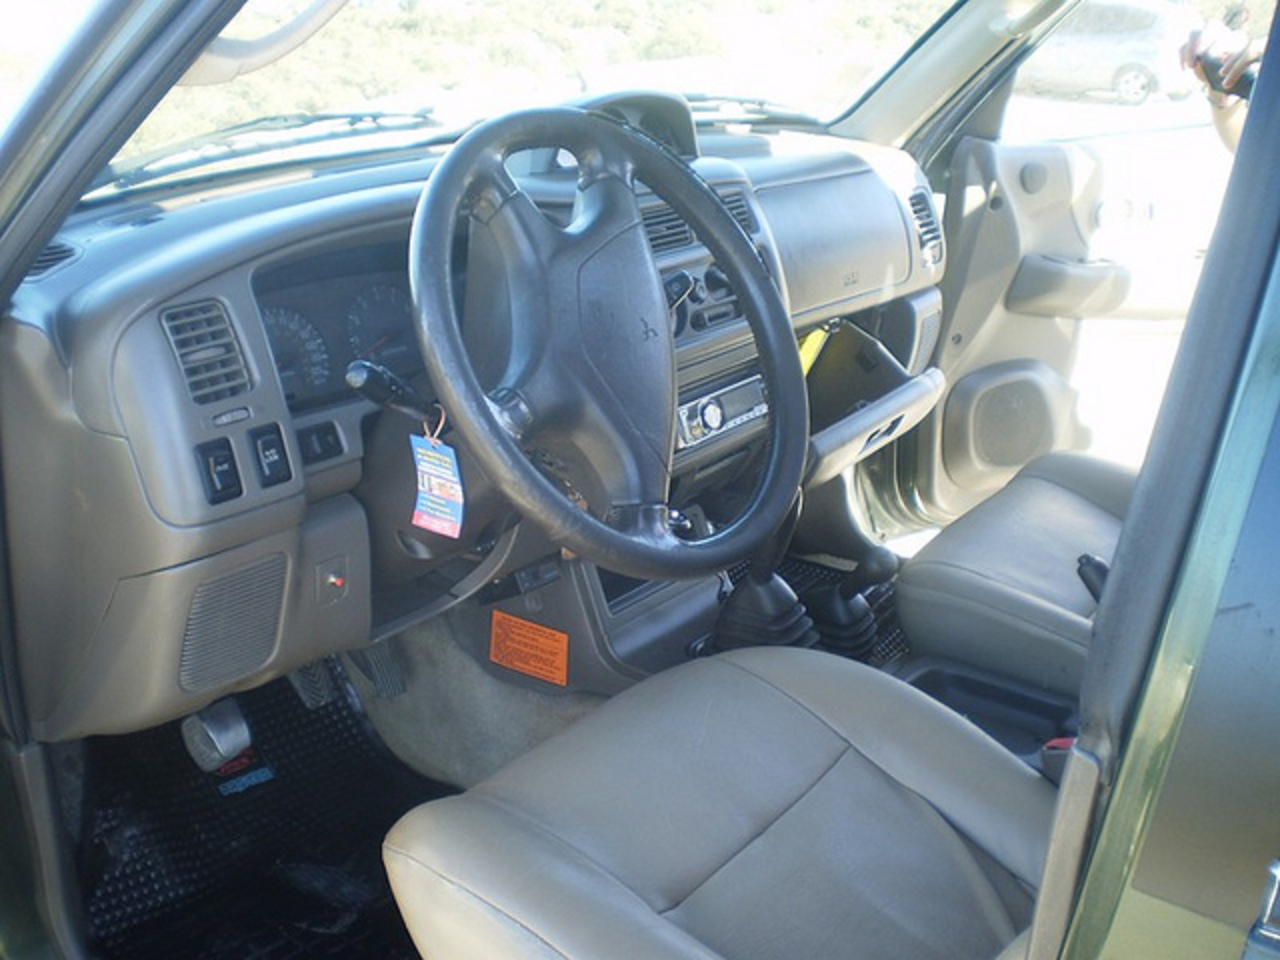 Mitsubishi Nativa 4x4 99 gnc full | Flickr - Photo Sharing!